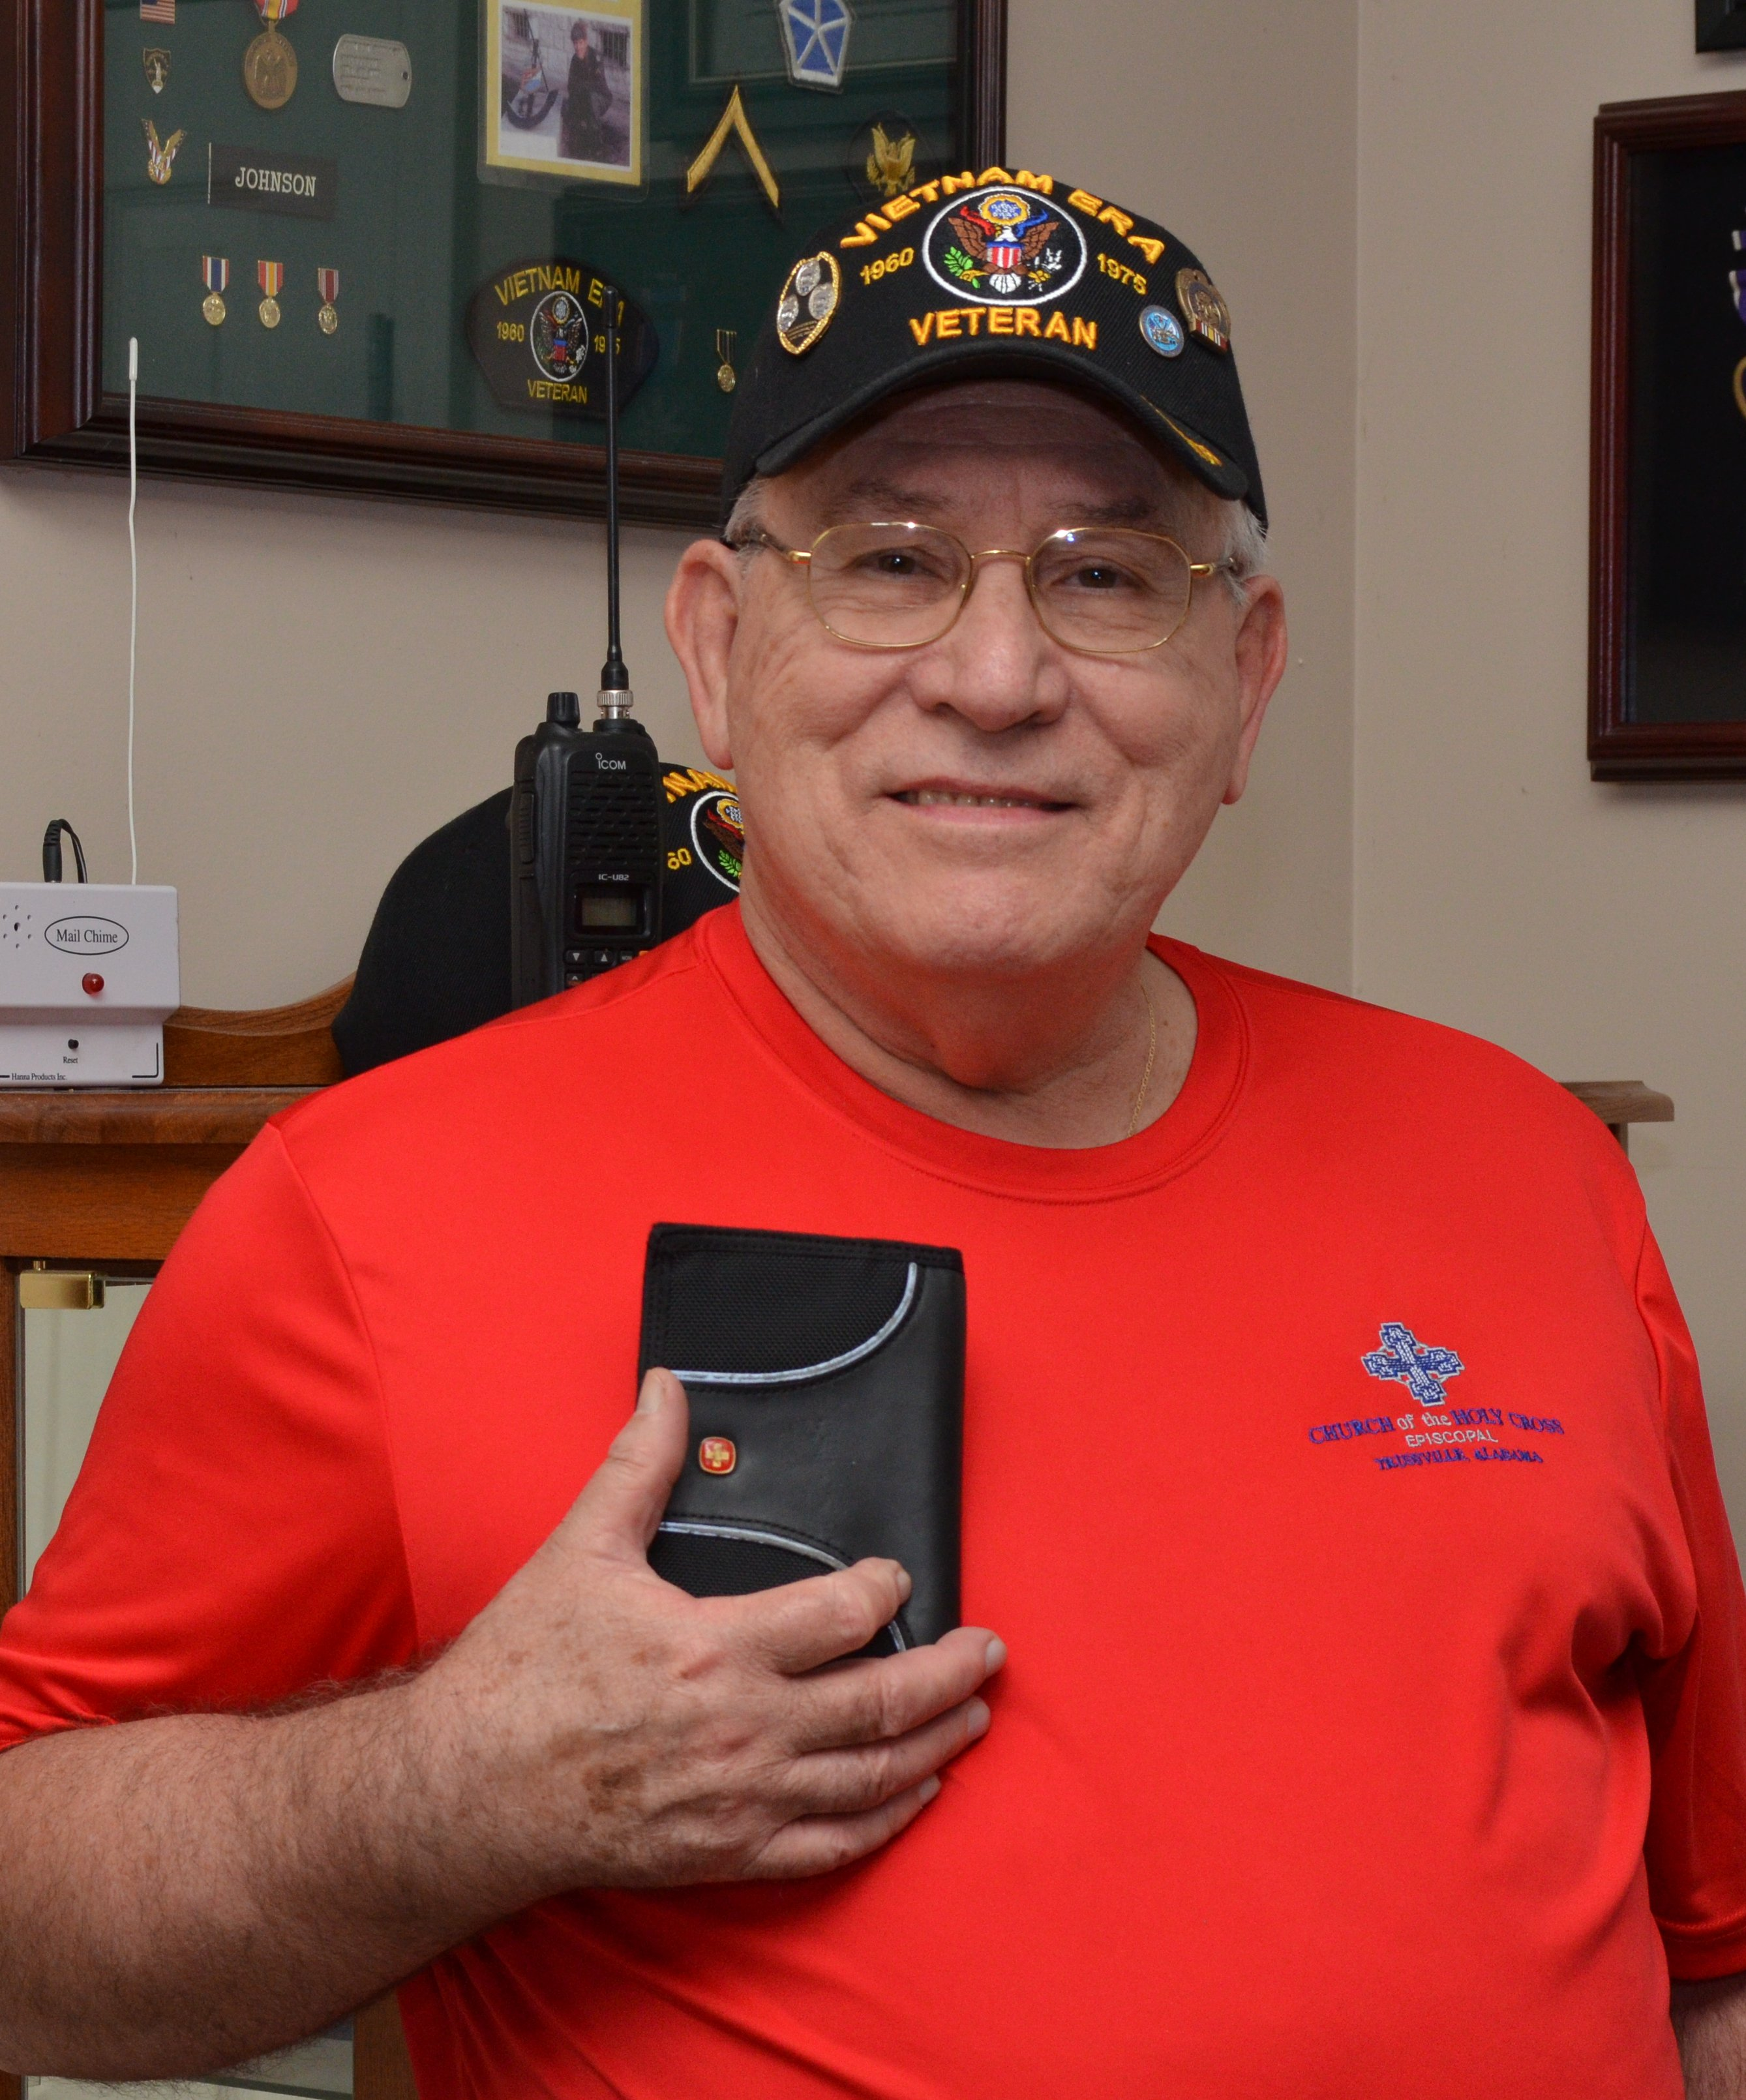 Springville veteran wishes to thank mother, son who found missing wallet